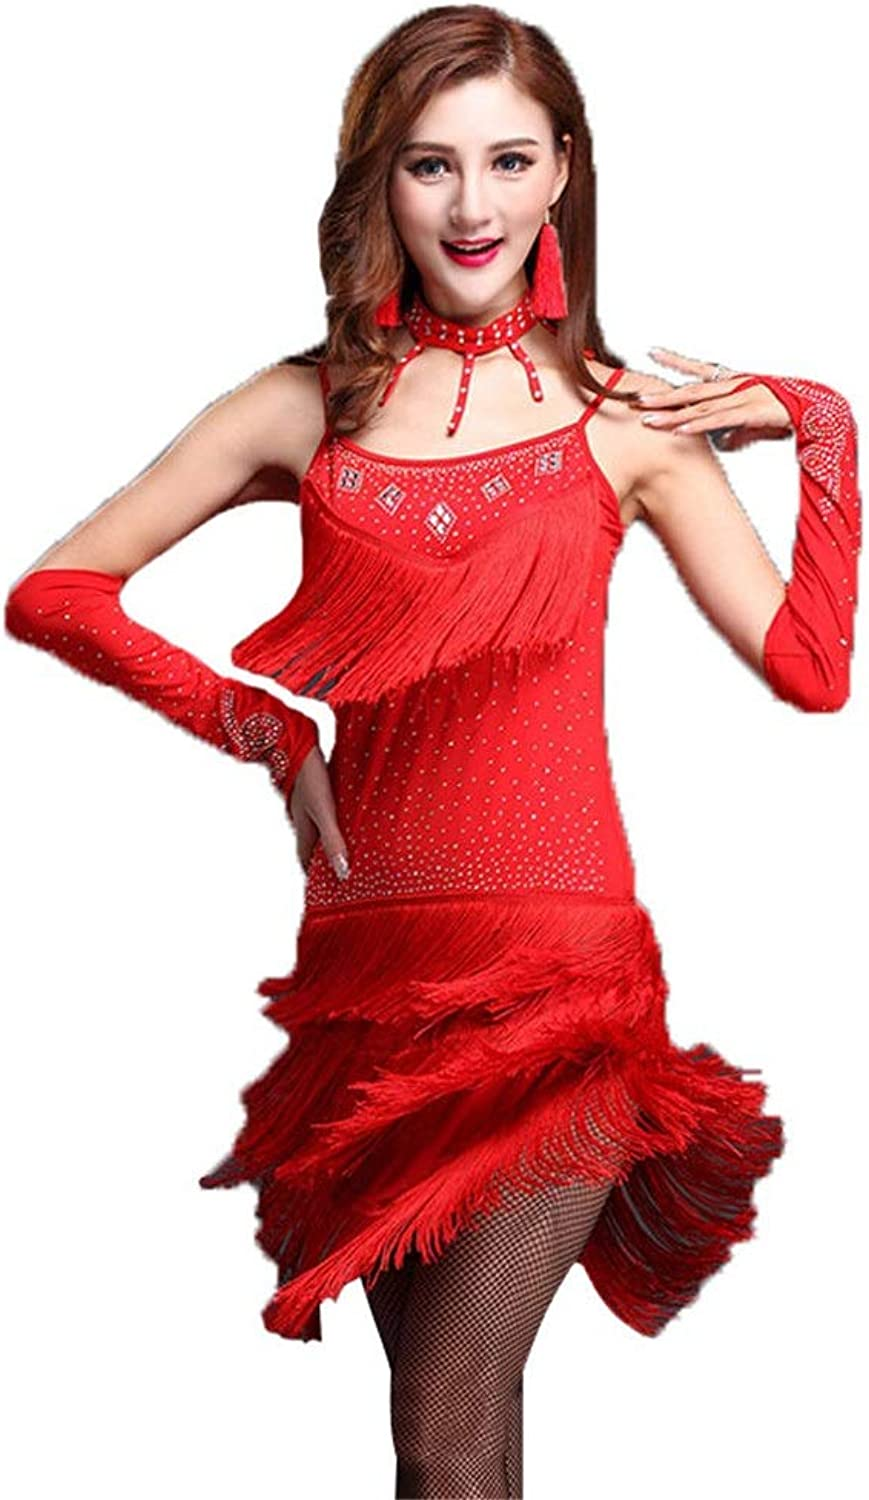 Latin Rumba Dance Dress Women Sleeveless Beaded Tassels Latin Dance Dress with Shorts Outfit Flapper Dance Dresses Costumes Rumba Chacha Tango Ballroom Performance Dancewear (color   Red, Size   L)